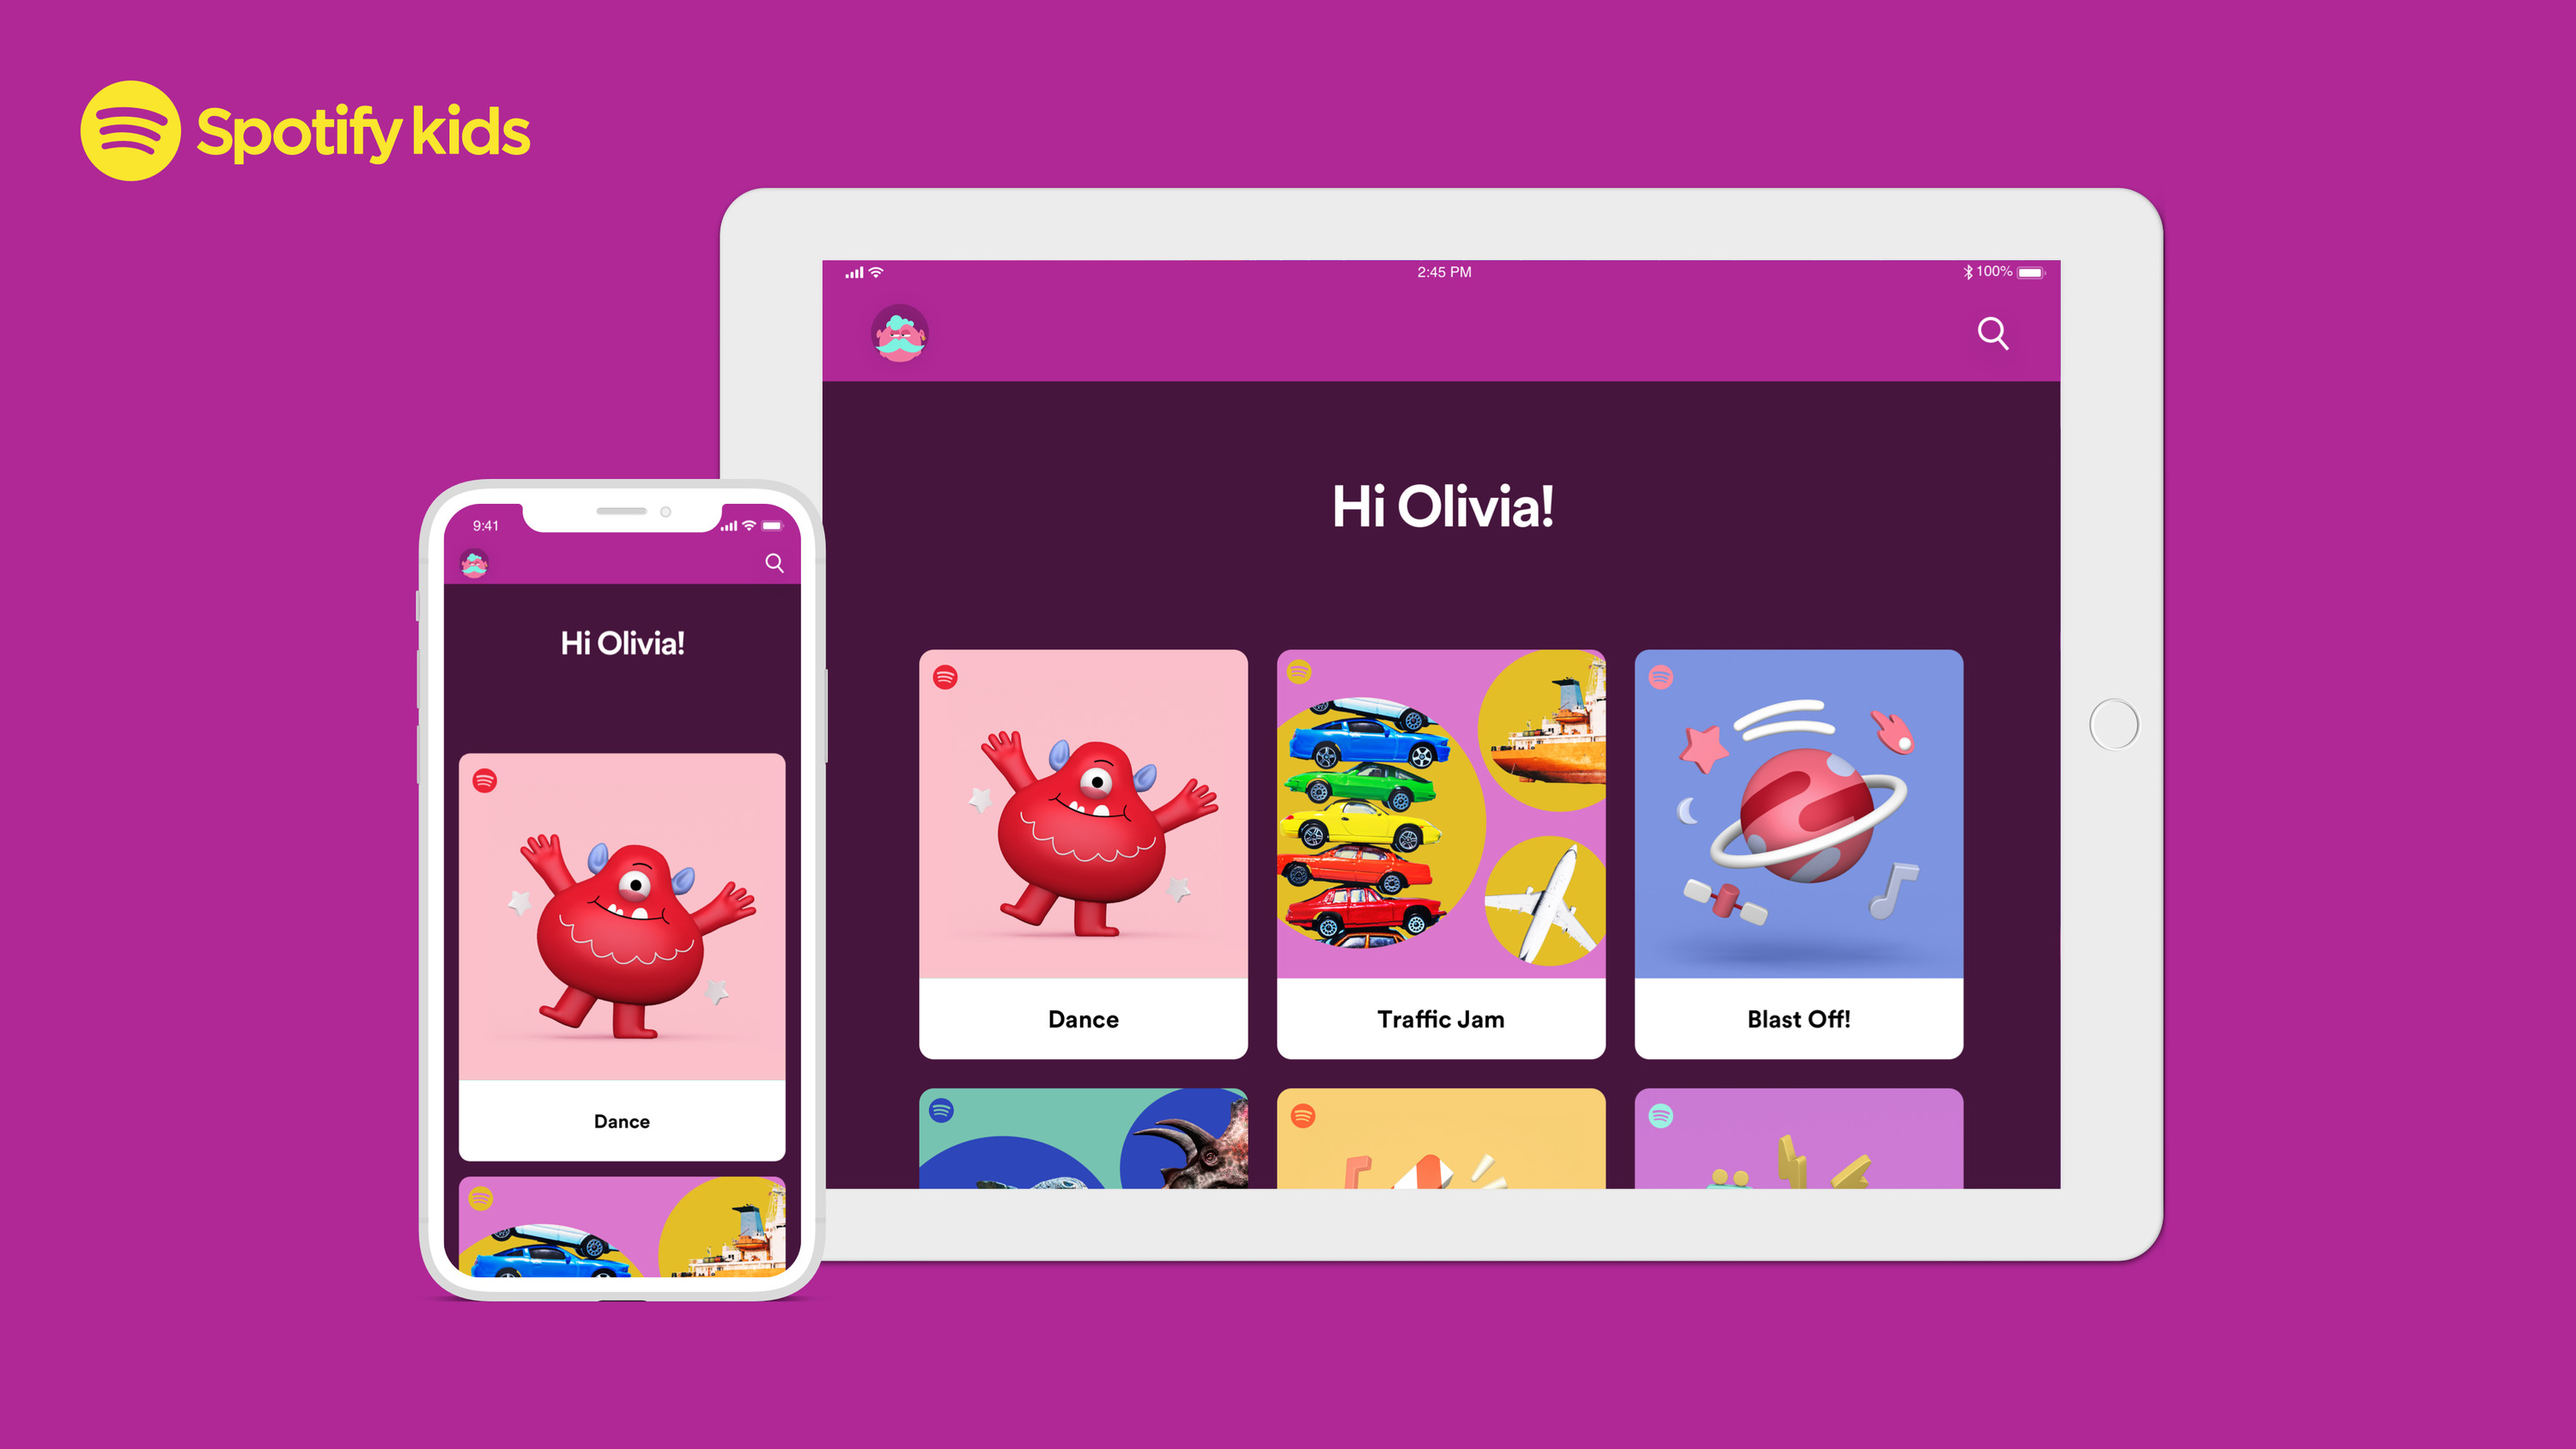 Spotify Kids is now a thing